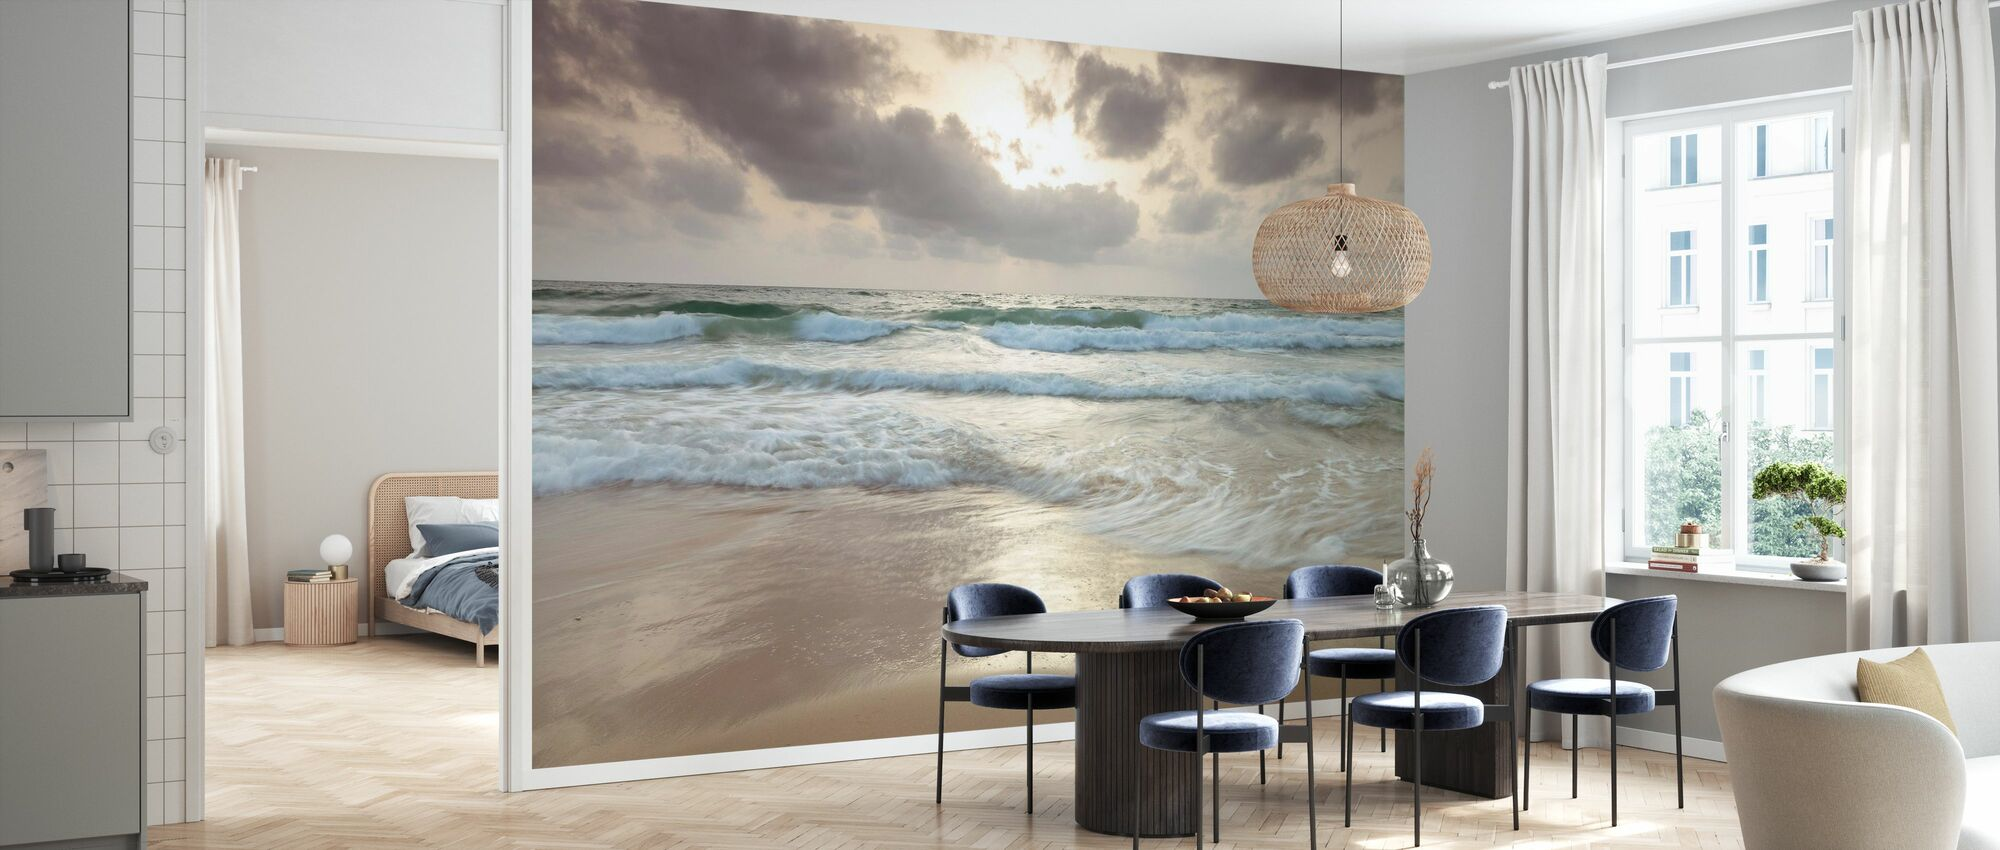 Beach - Wallpaper - Kitchen